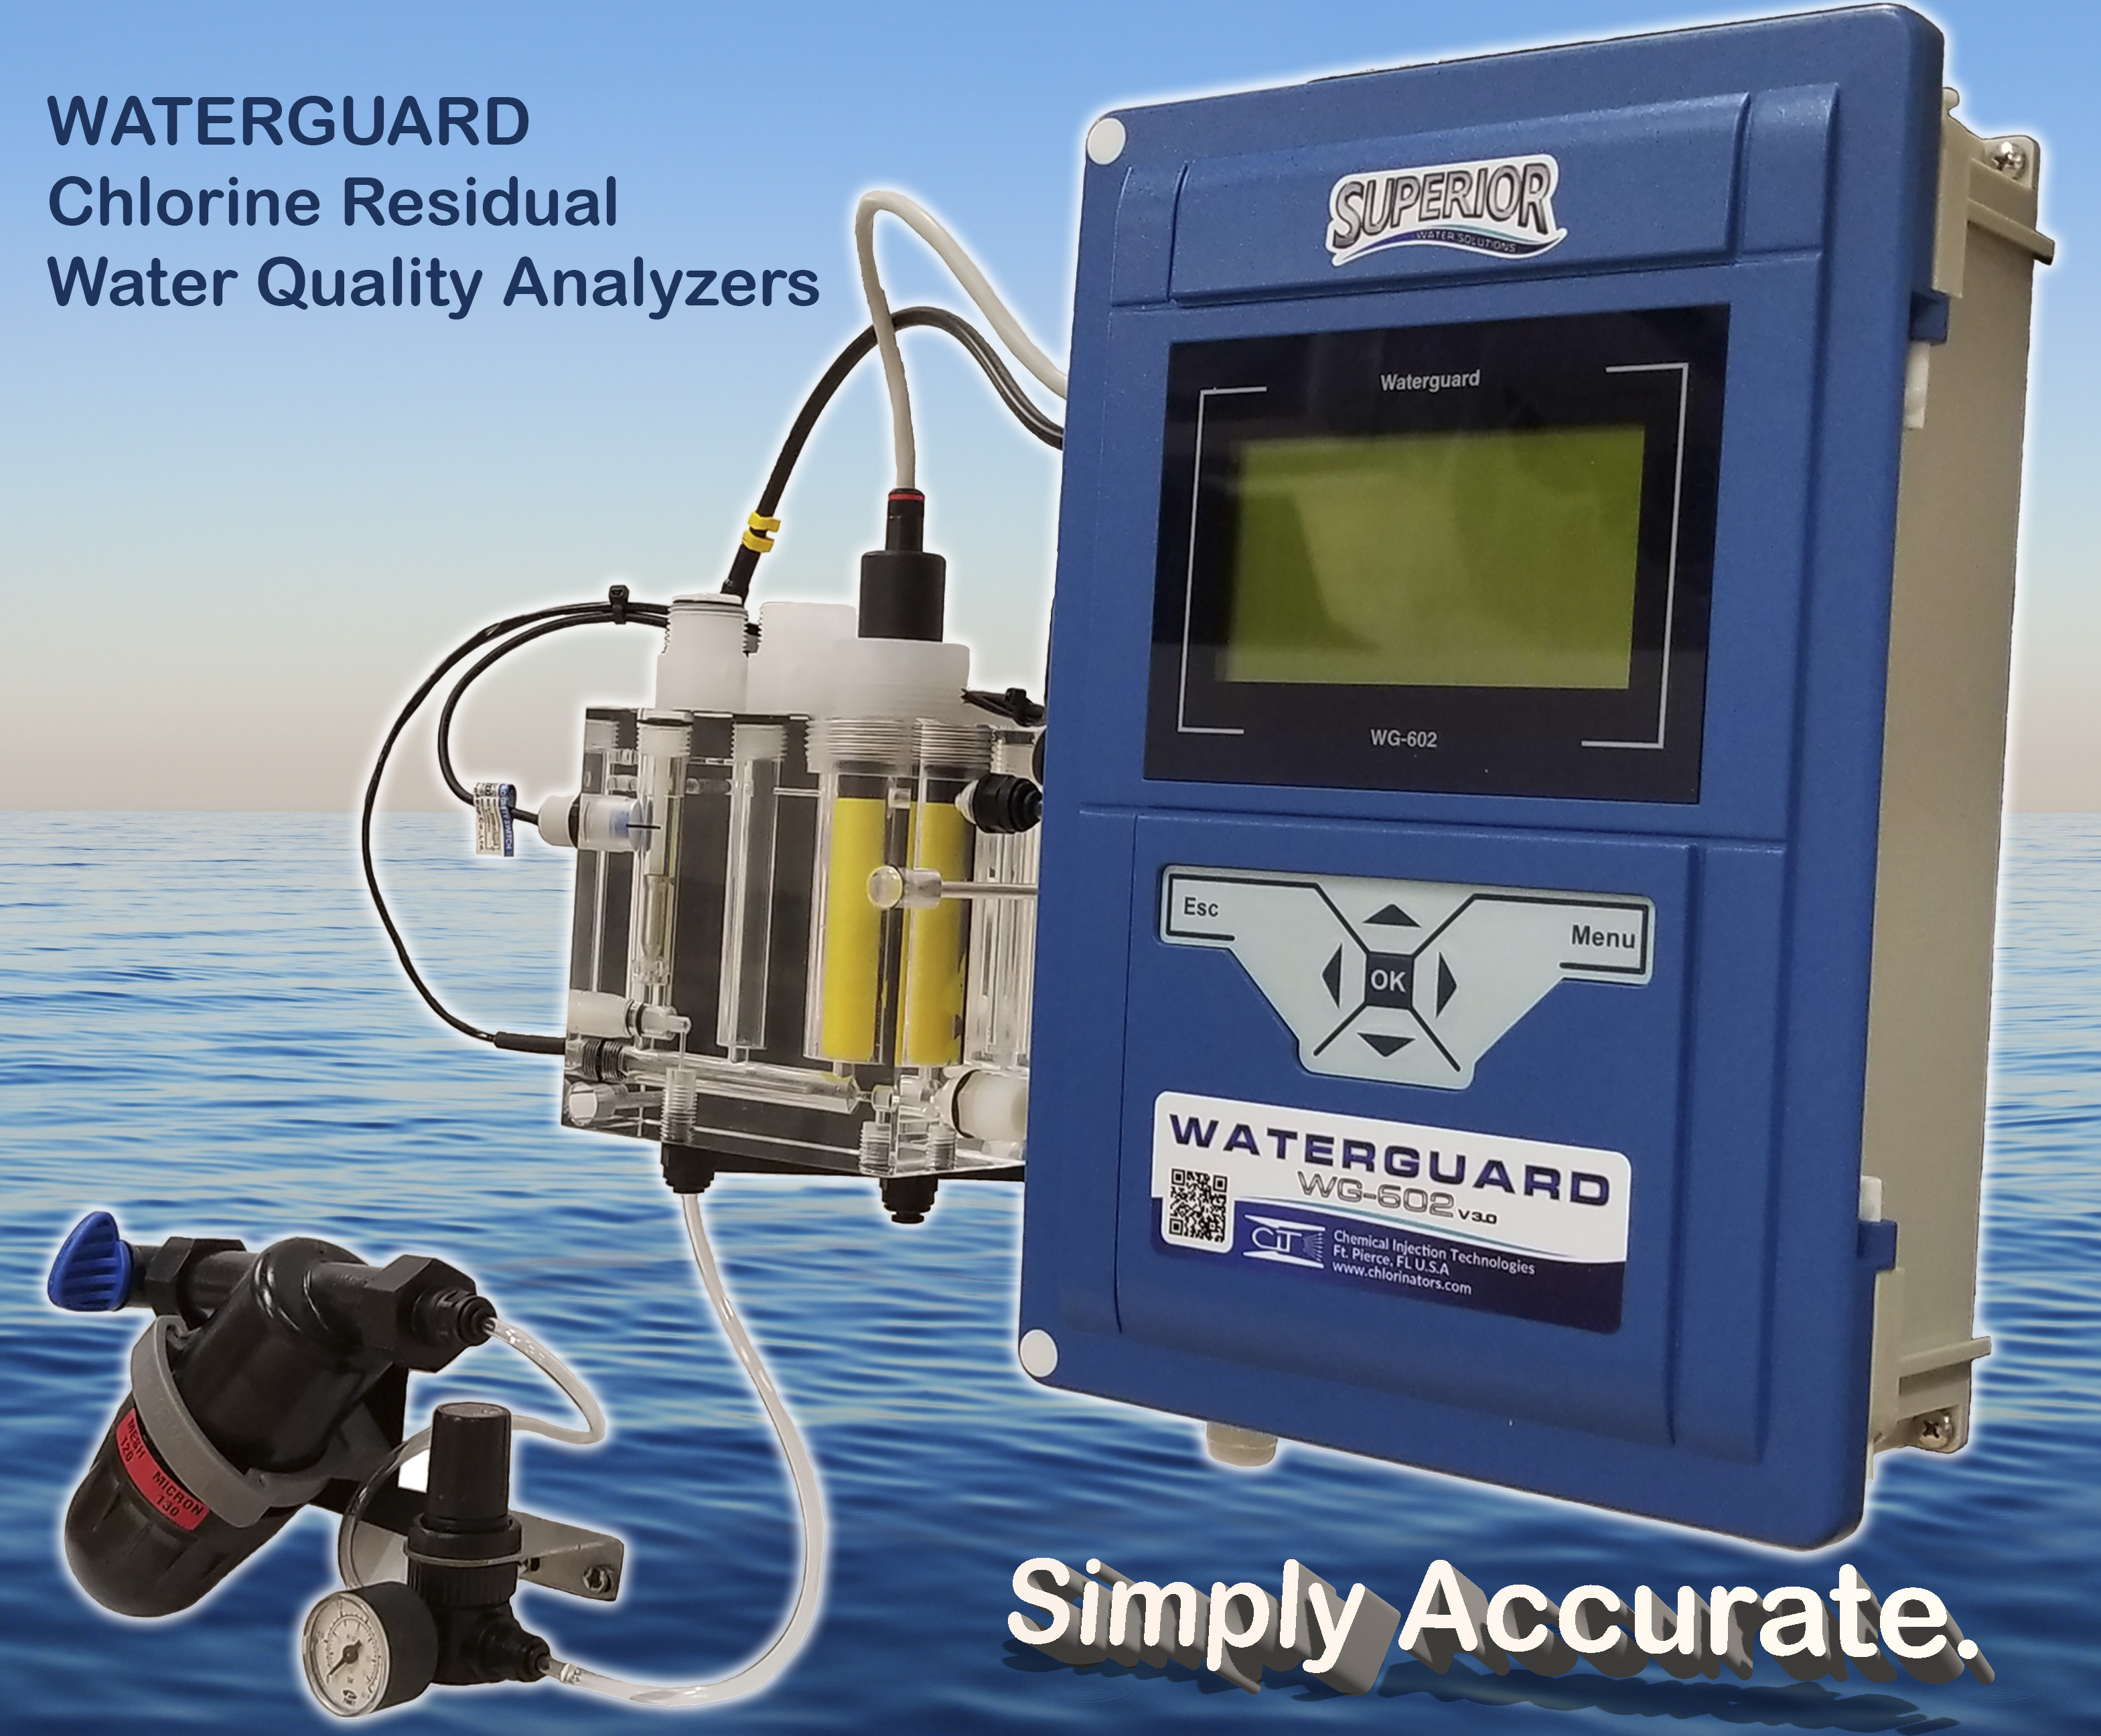 chlorine, residual, analyzer, water quality, water solutions, gas chlorinator, superior, chloramine, instrumentation,